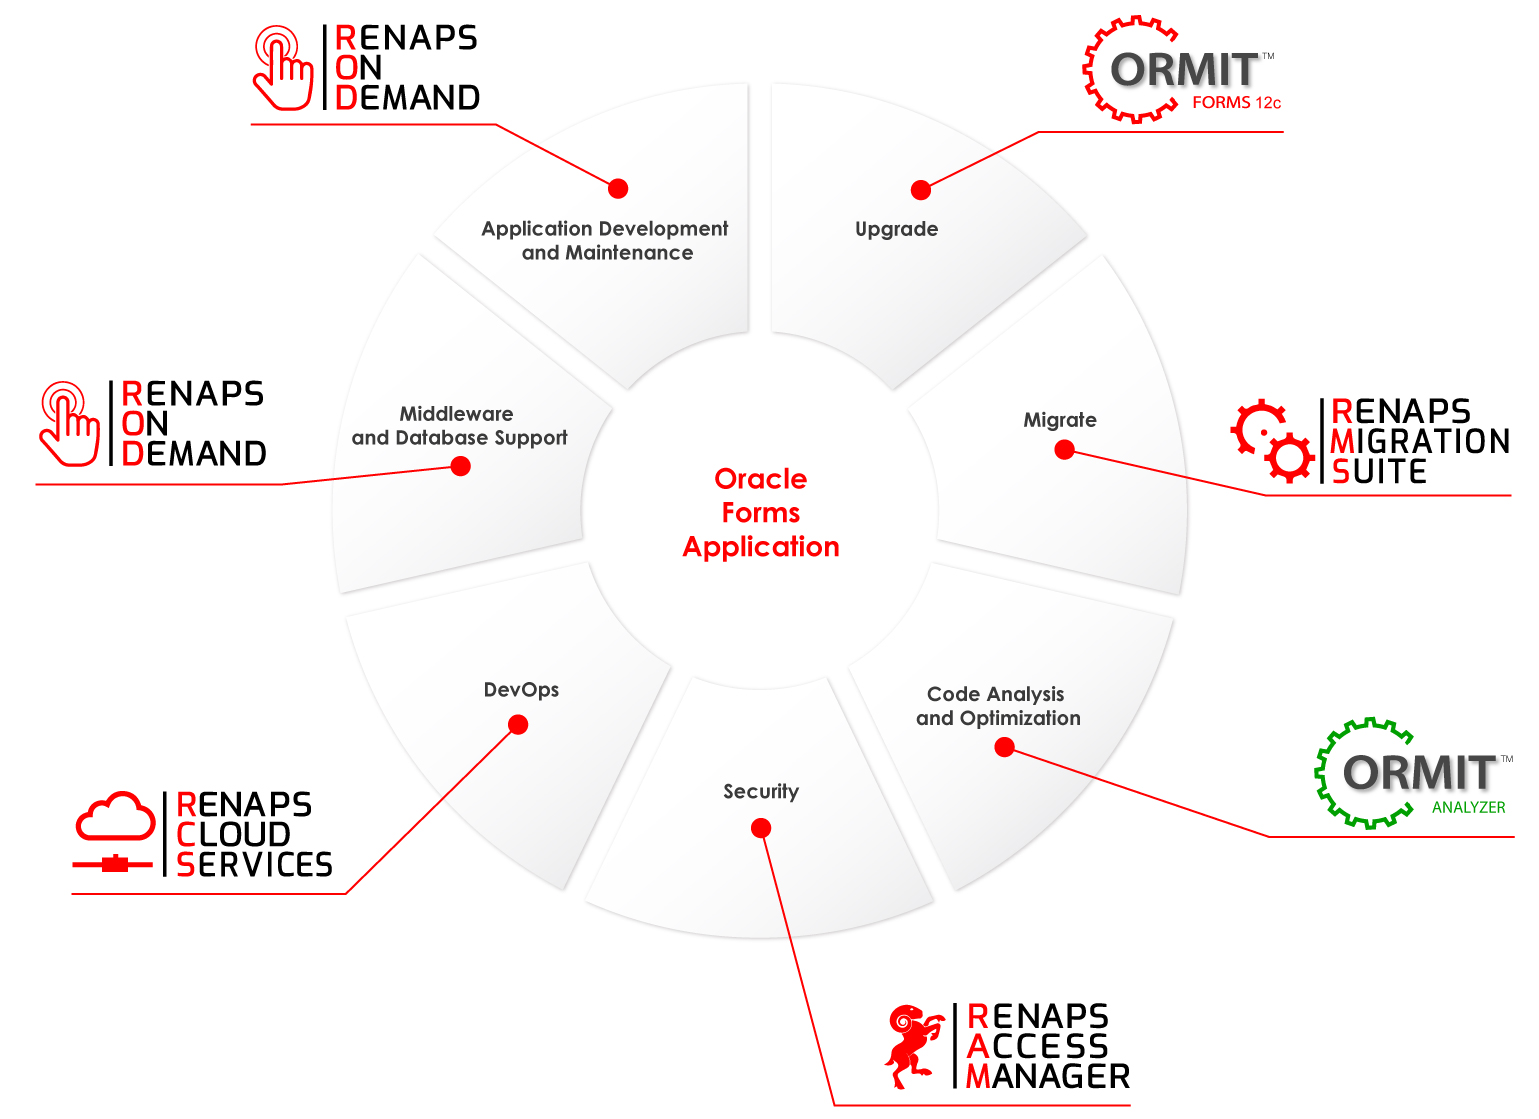 RENAPS - Oracle Managed Services, Oracle Forms Migrations